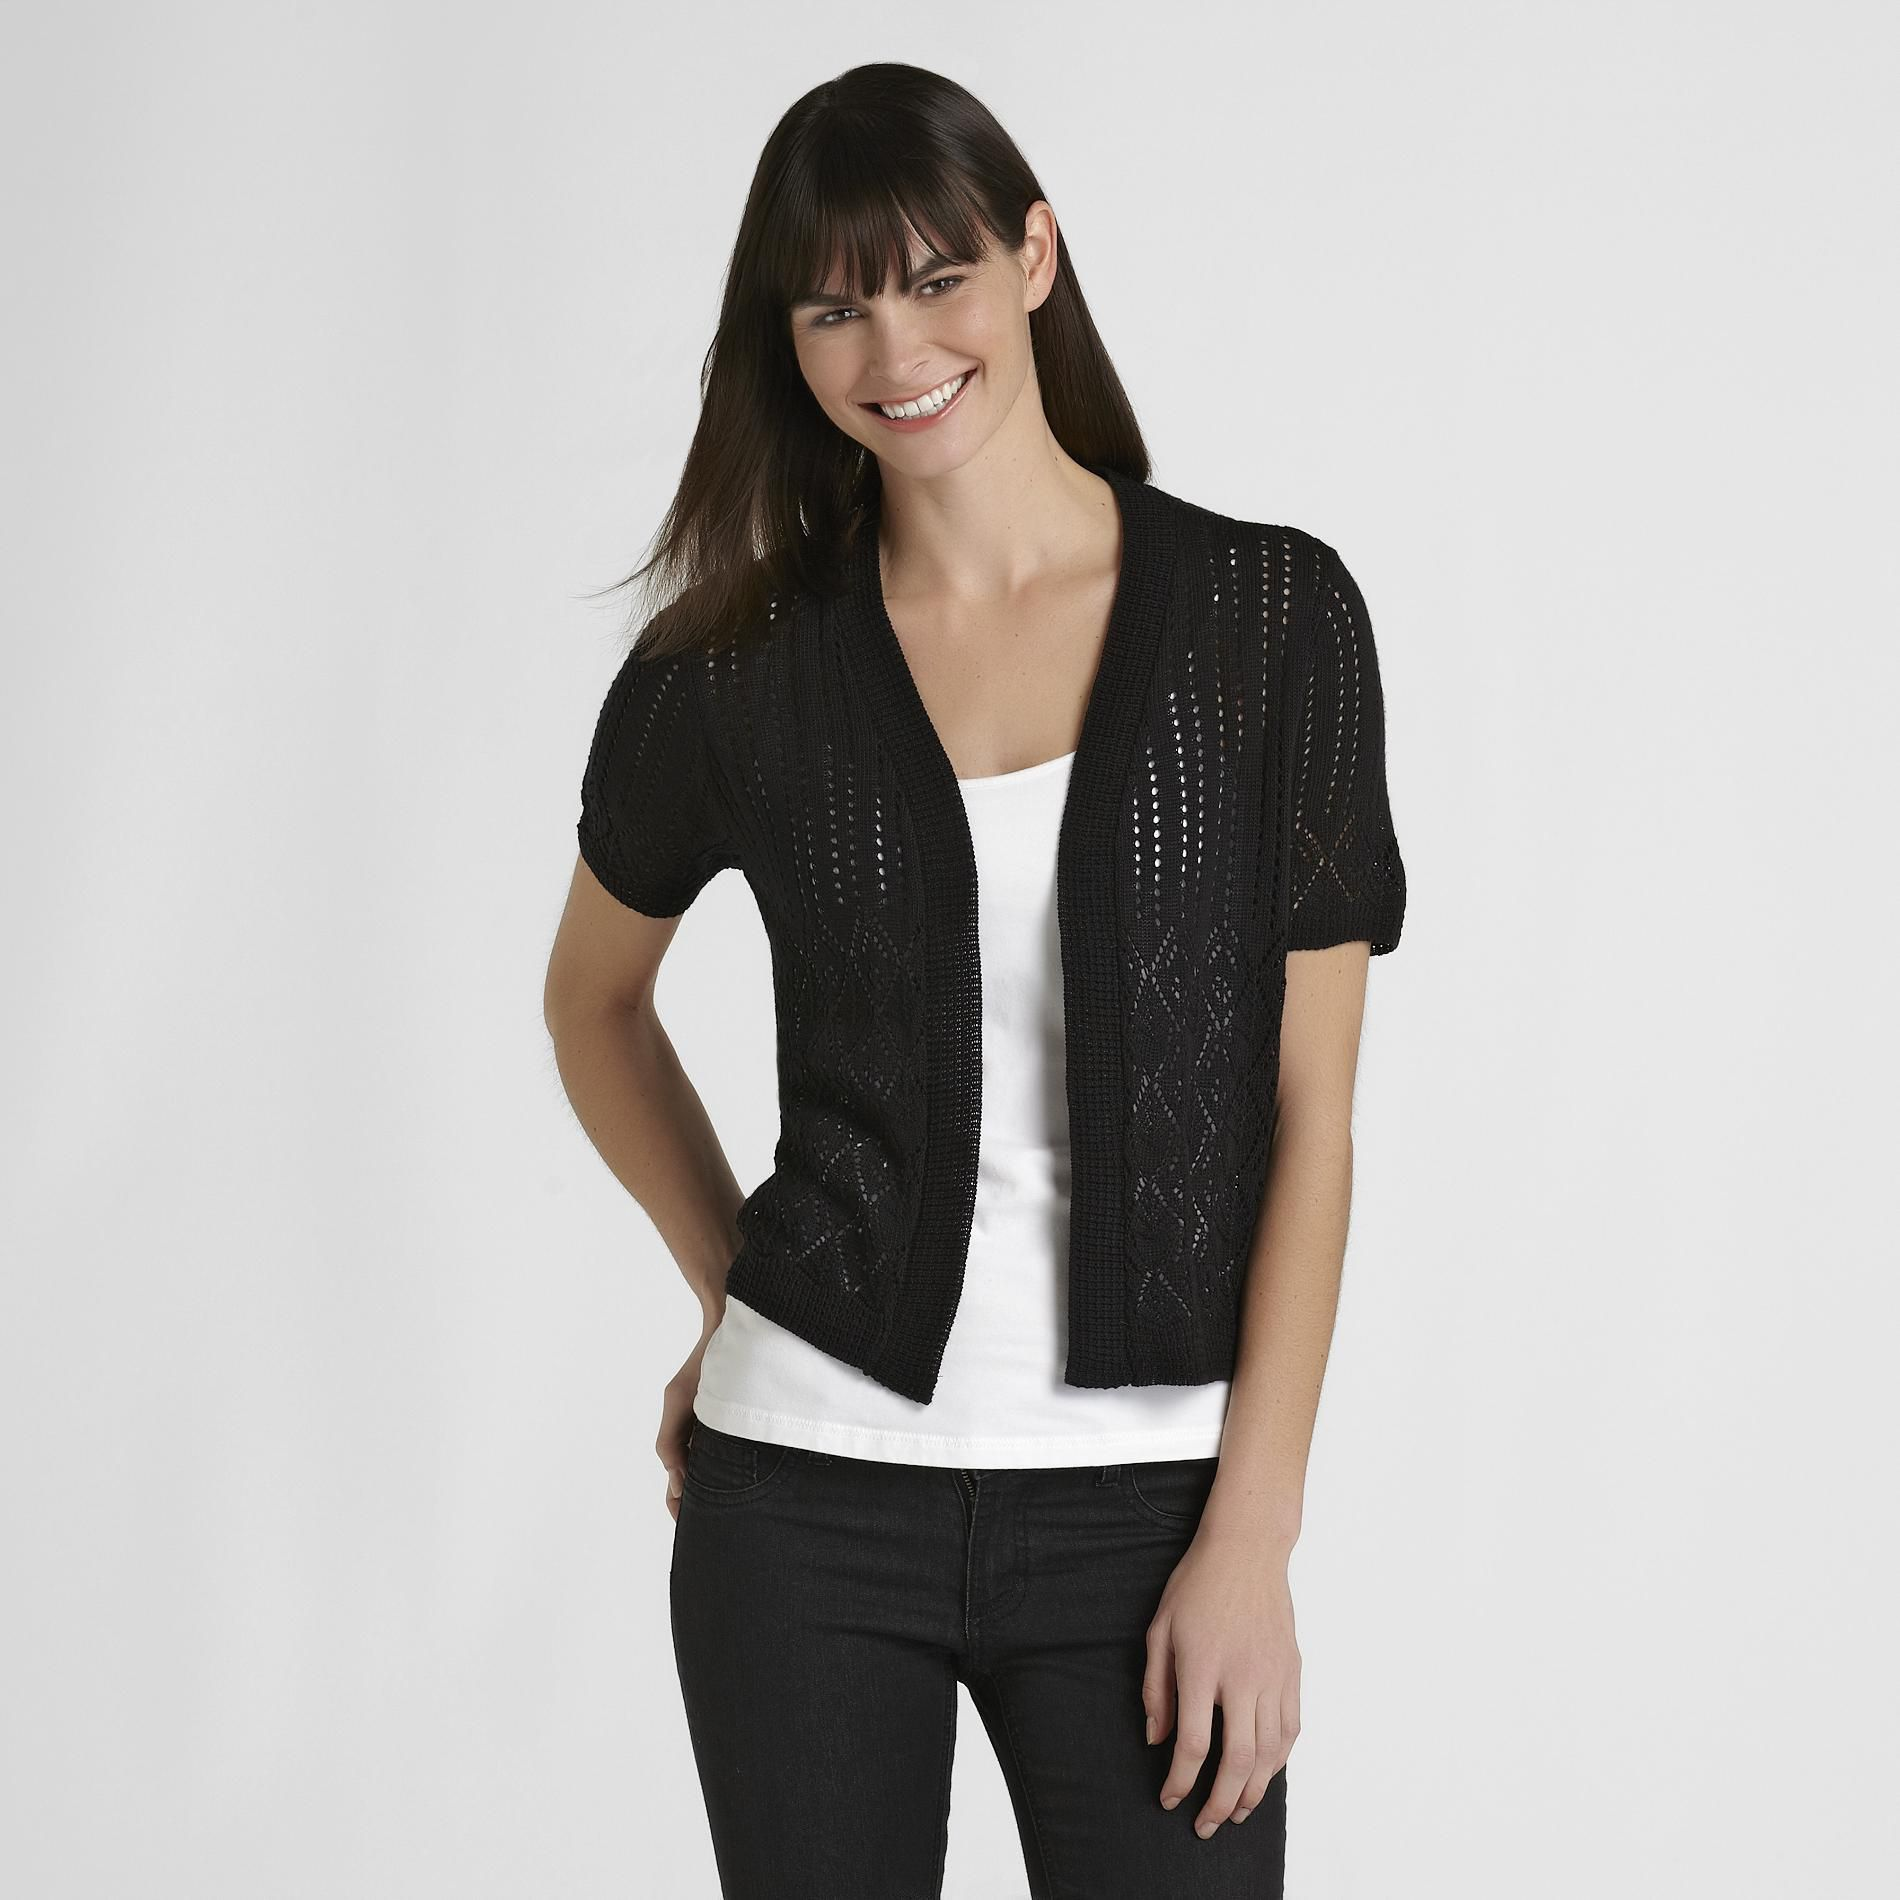 Basic Editions Women's Knit Cardigan at Kmart.com